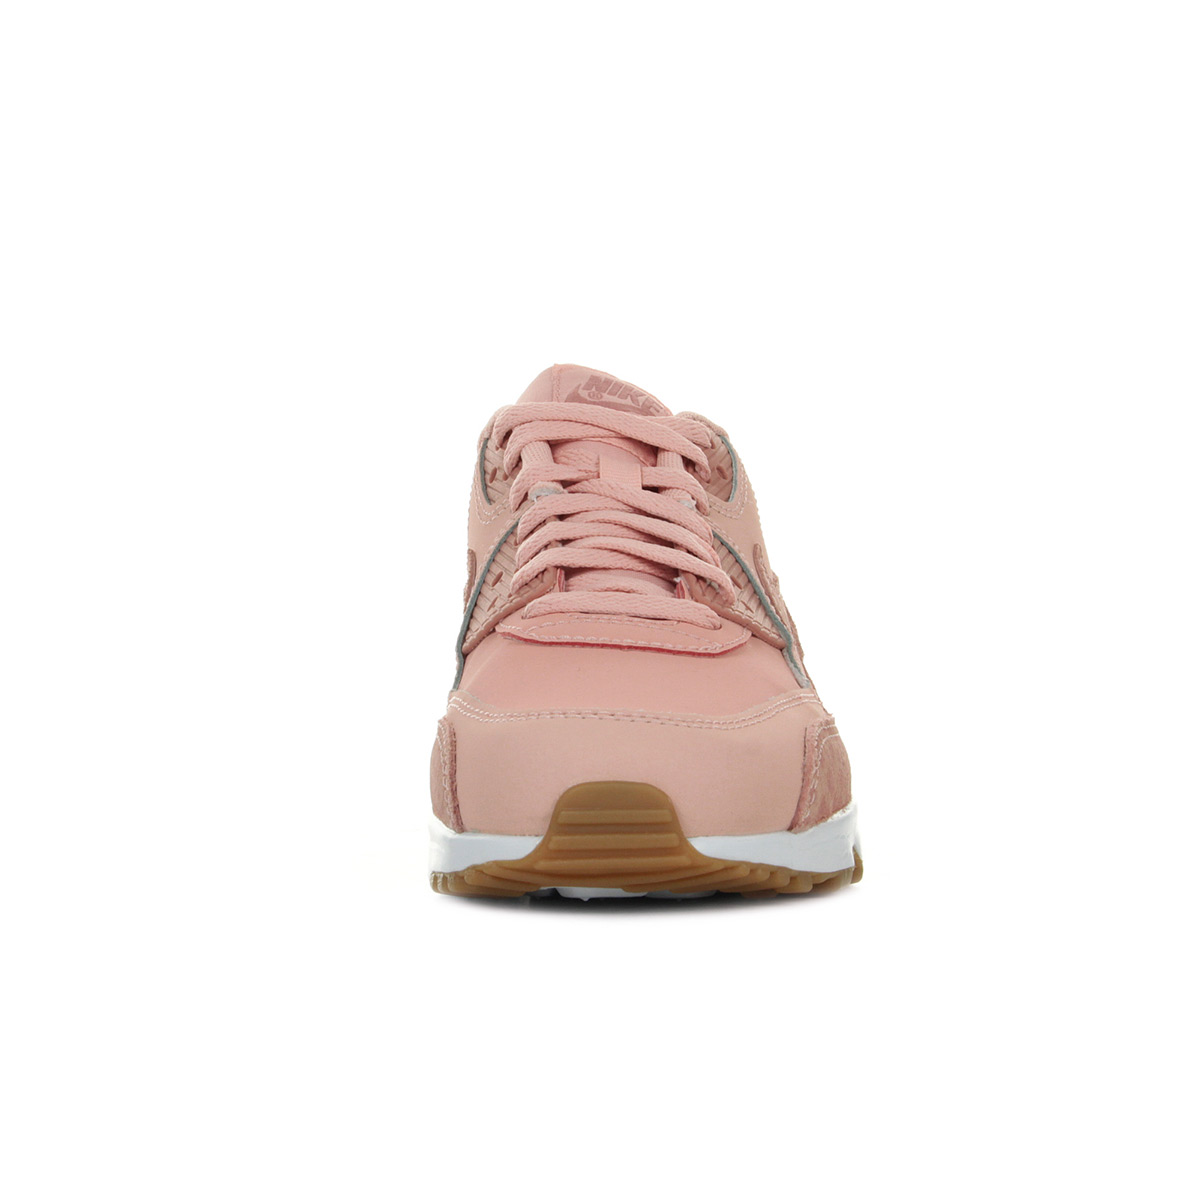 Nike Air Max 90 Leather SE GG 897987601, Baskets mode femme